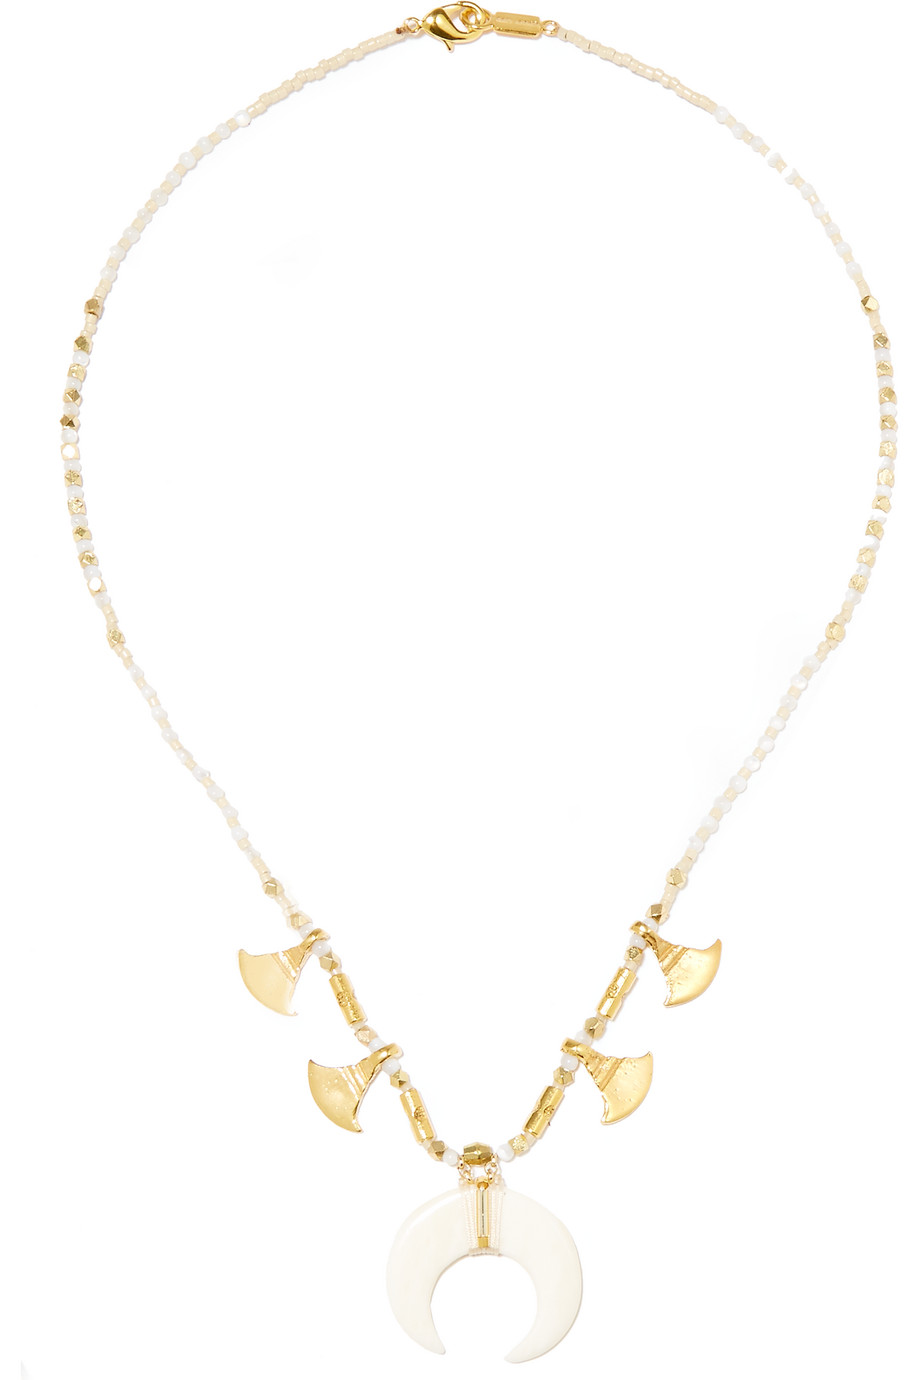 Chan Luu Gold-Plated, Bone and Mother-of-Pearl Necklace, Women's